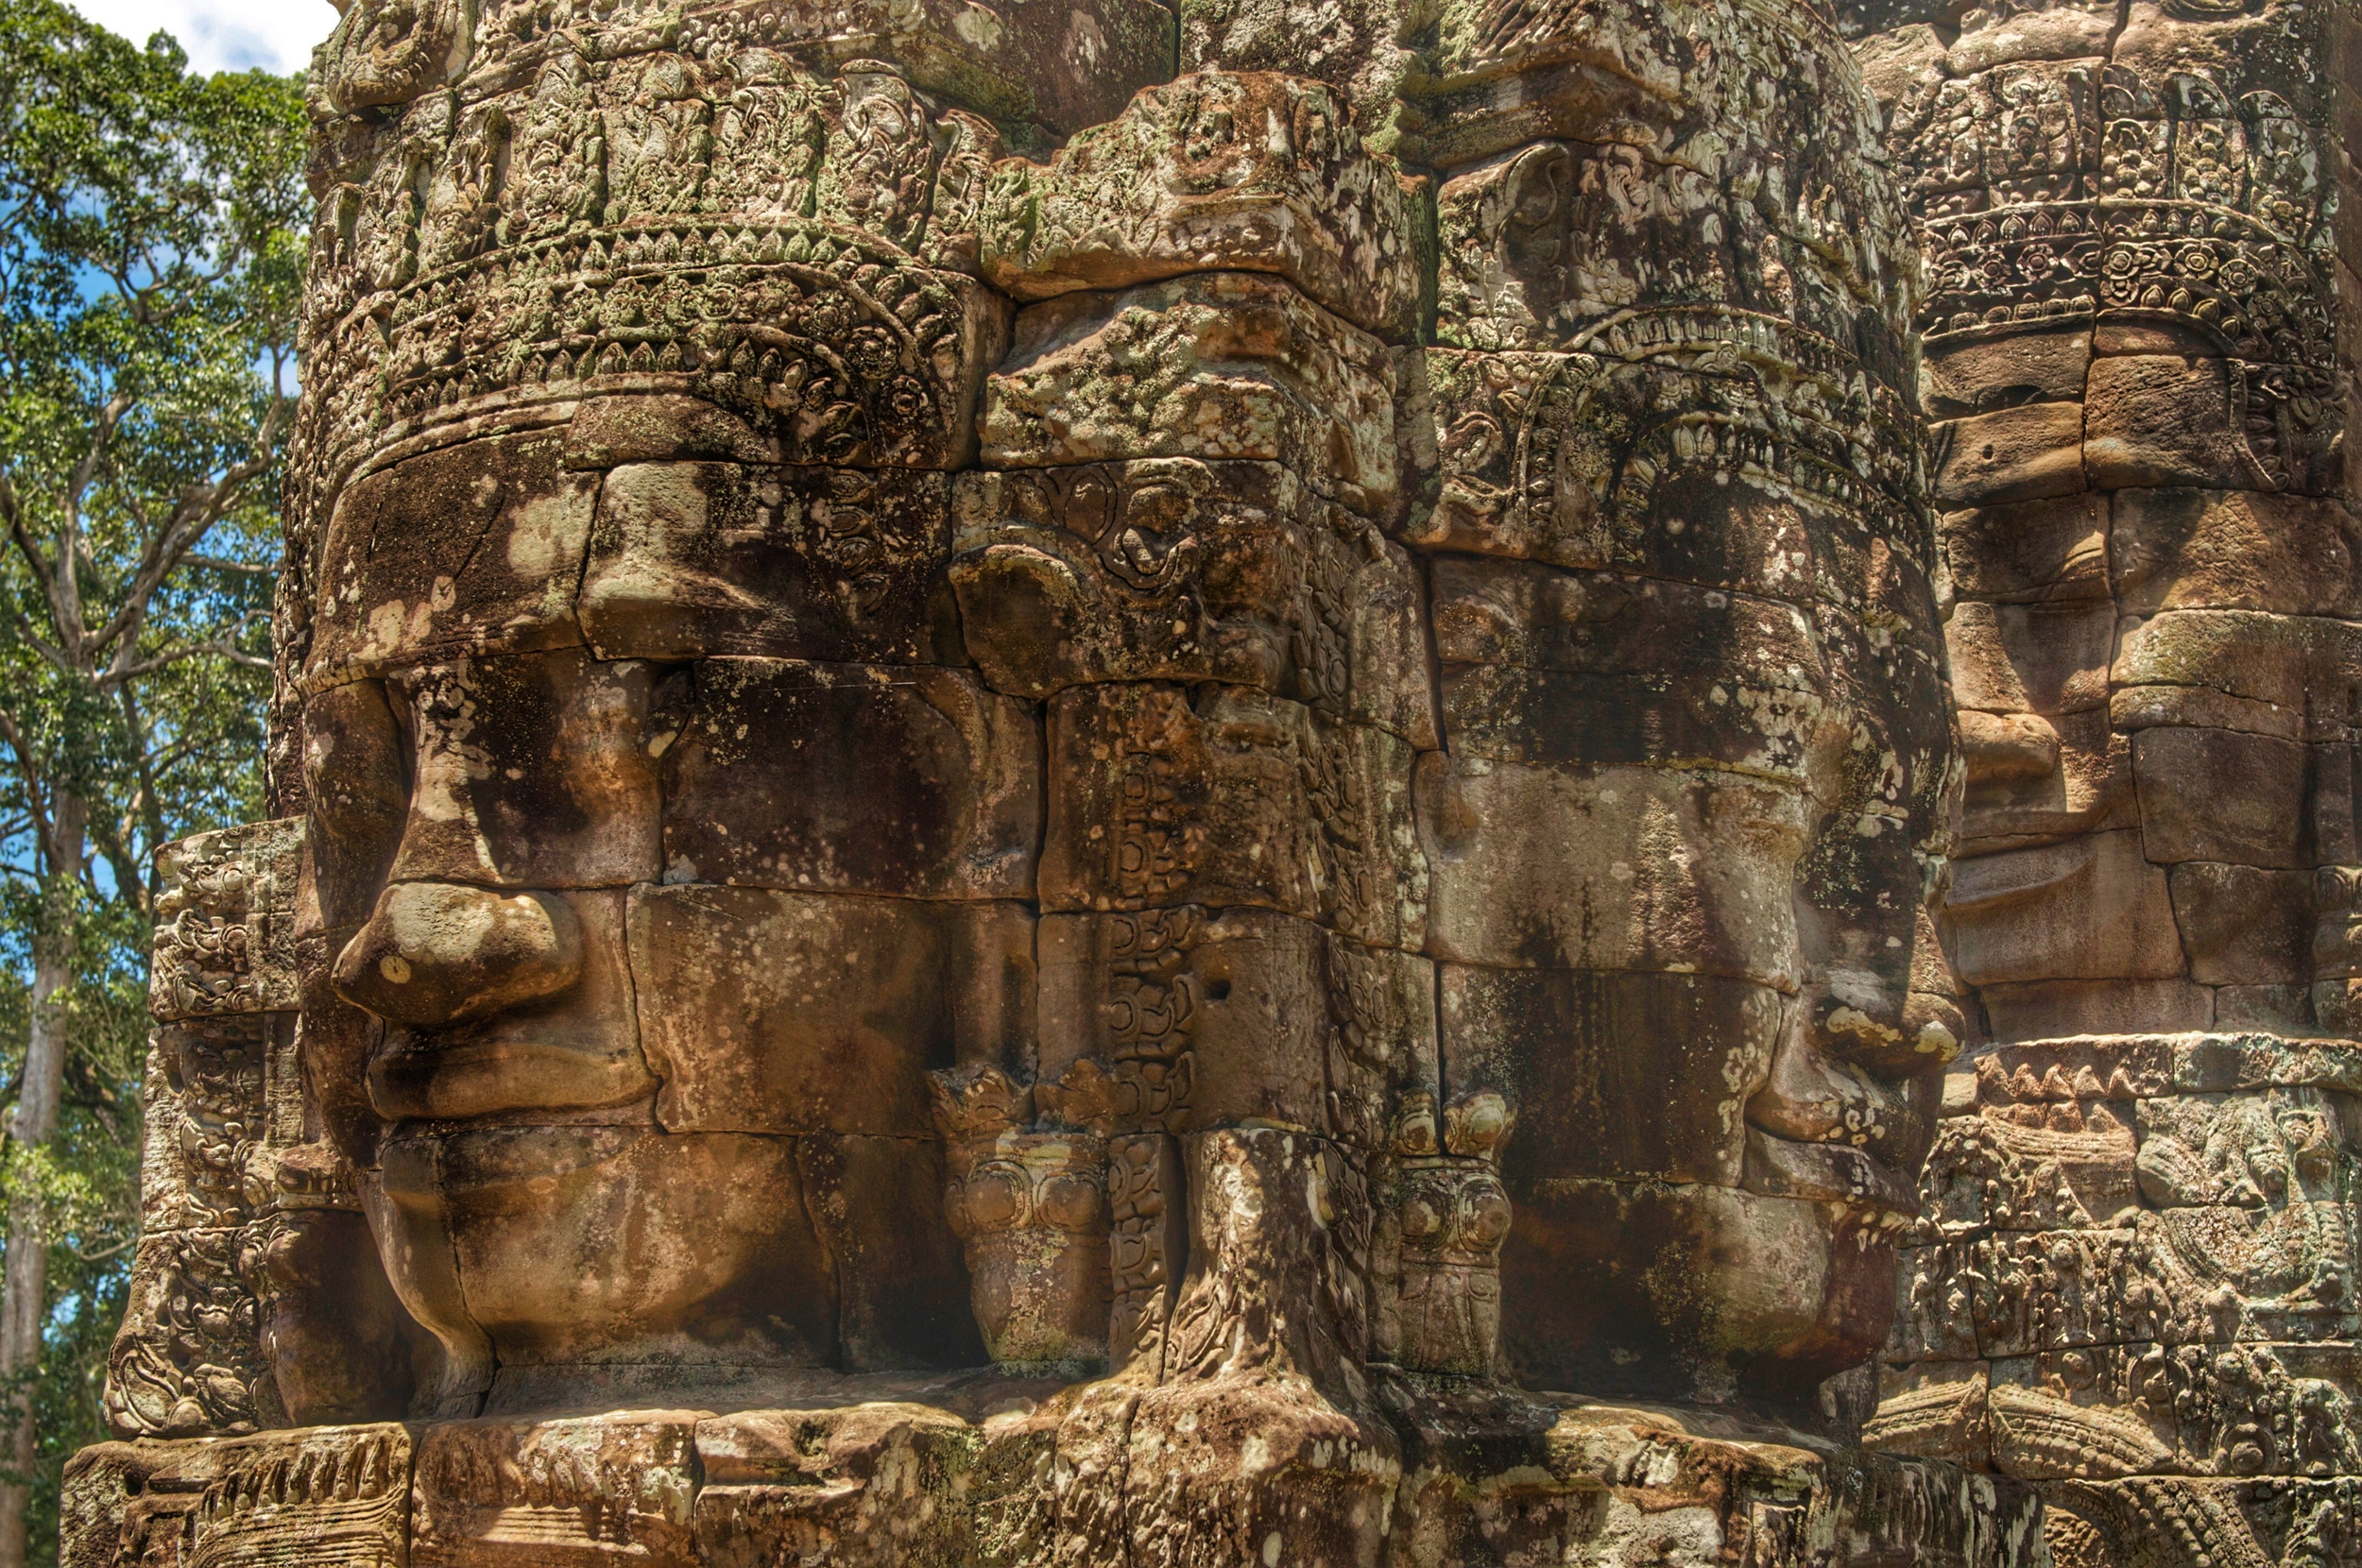 The 216 smiling faces of Bayon